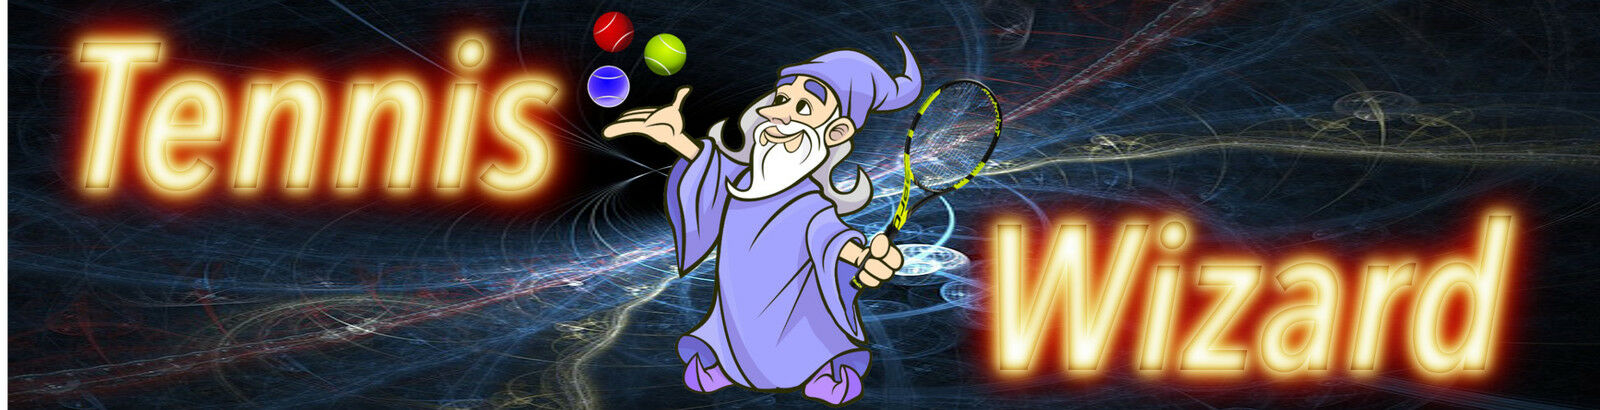 Tennis-Wizard-Superstore